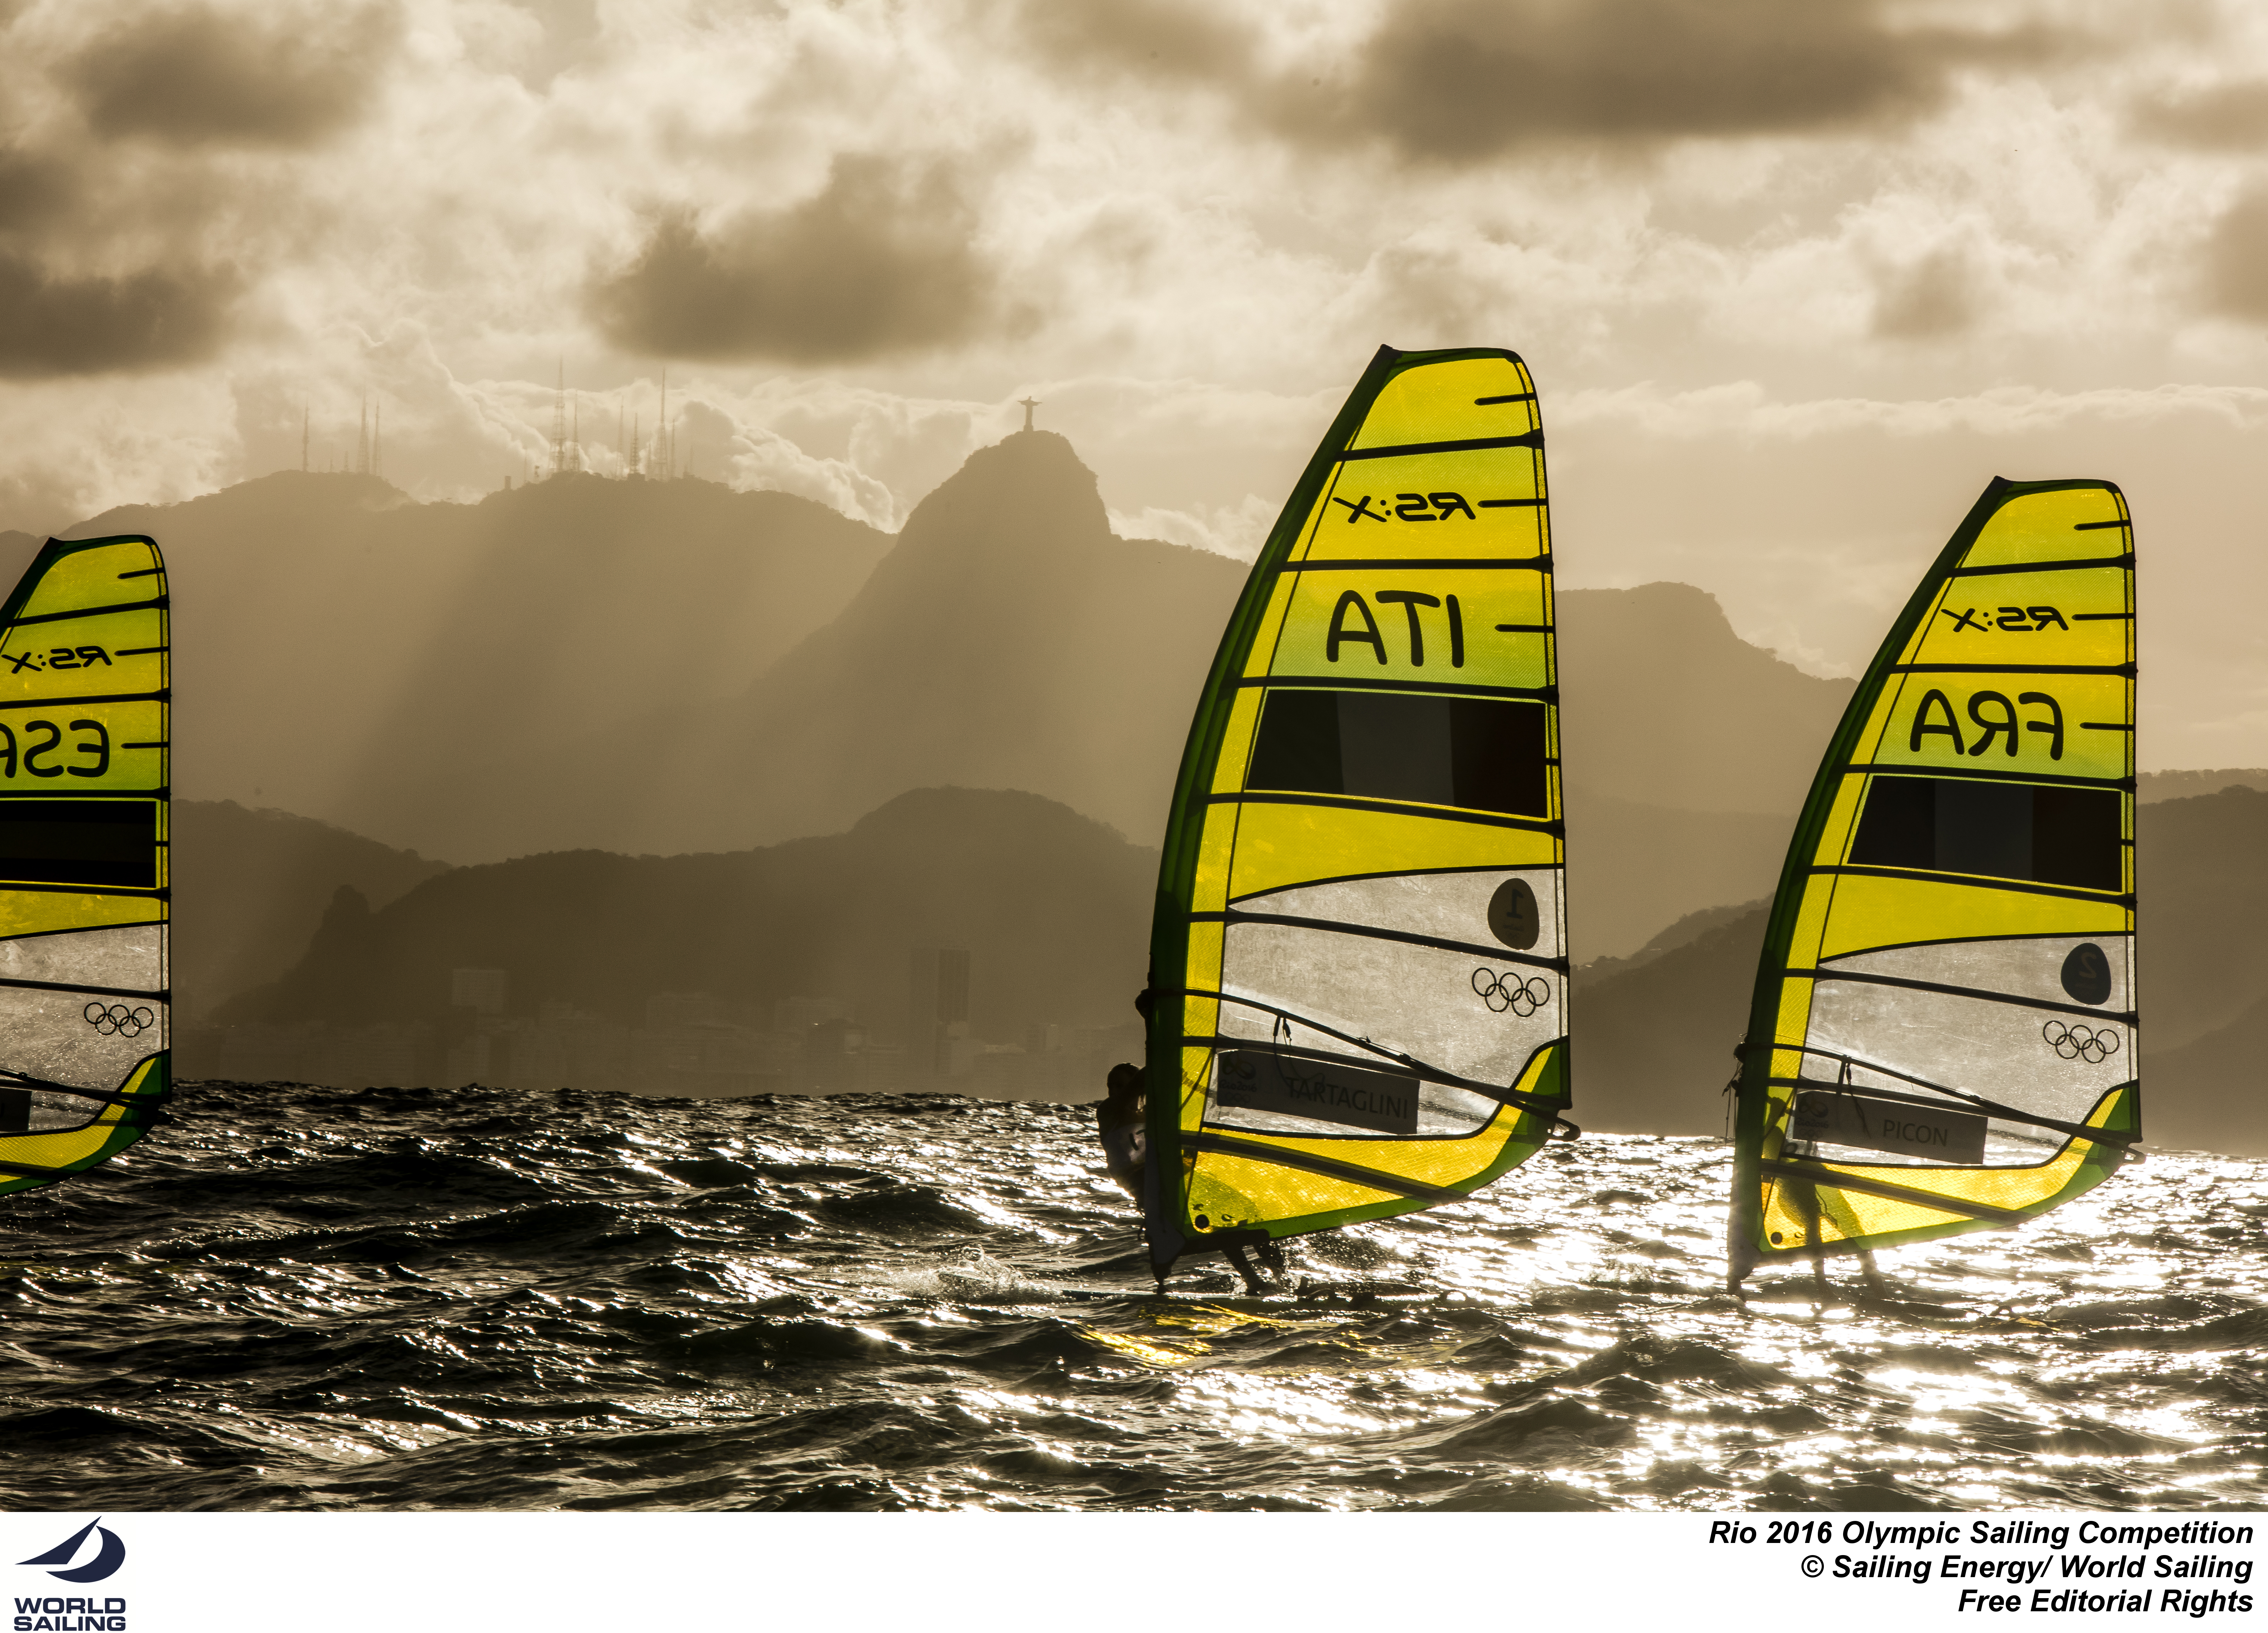 The Rio 2016 Olympic Sailing Competition  (C) Sailing Energy